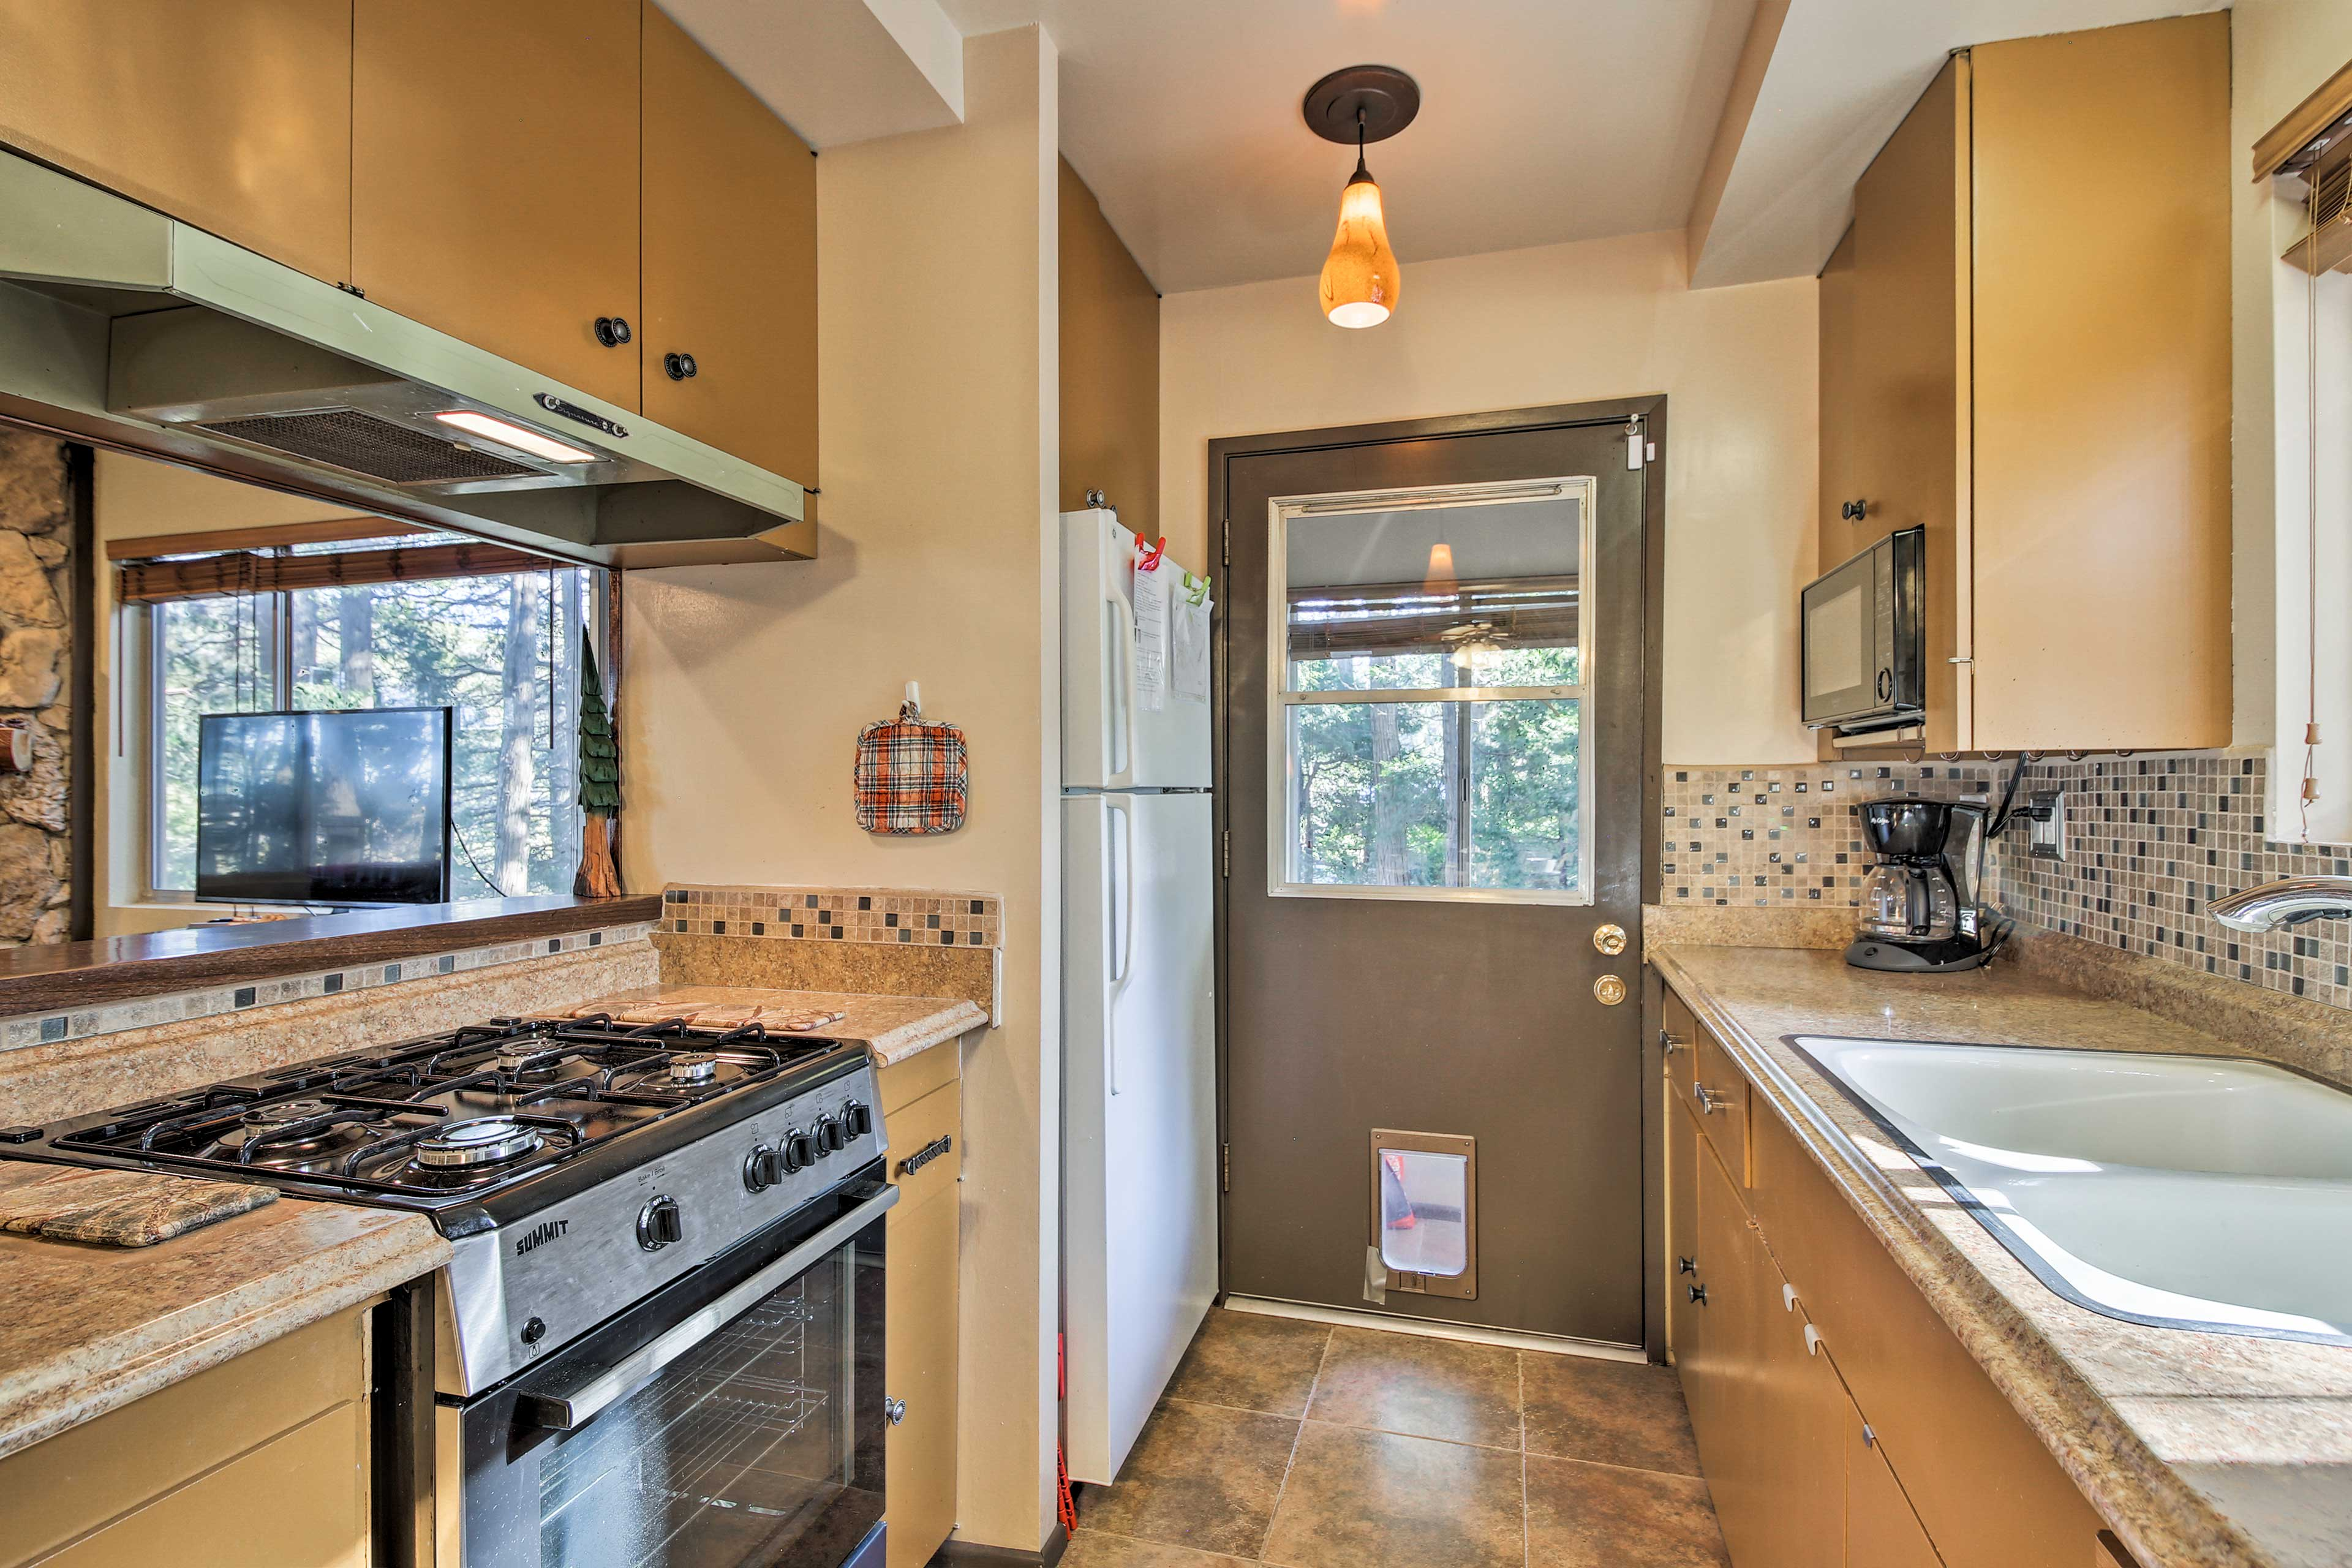 There's no need to eat out thanks to the spacious kitchen!